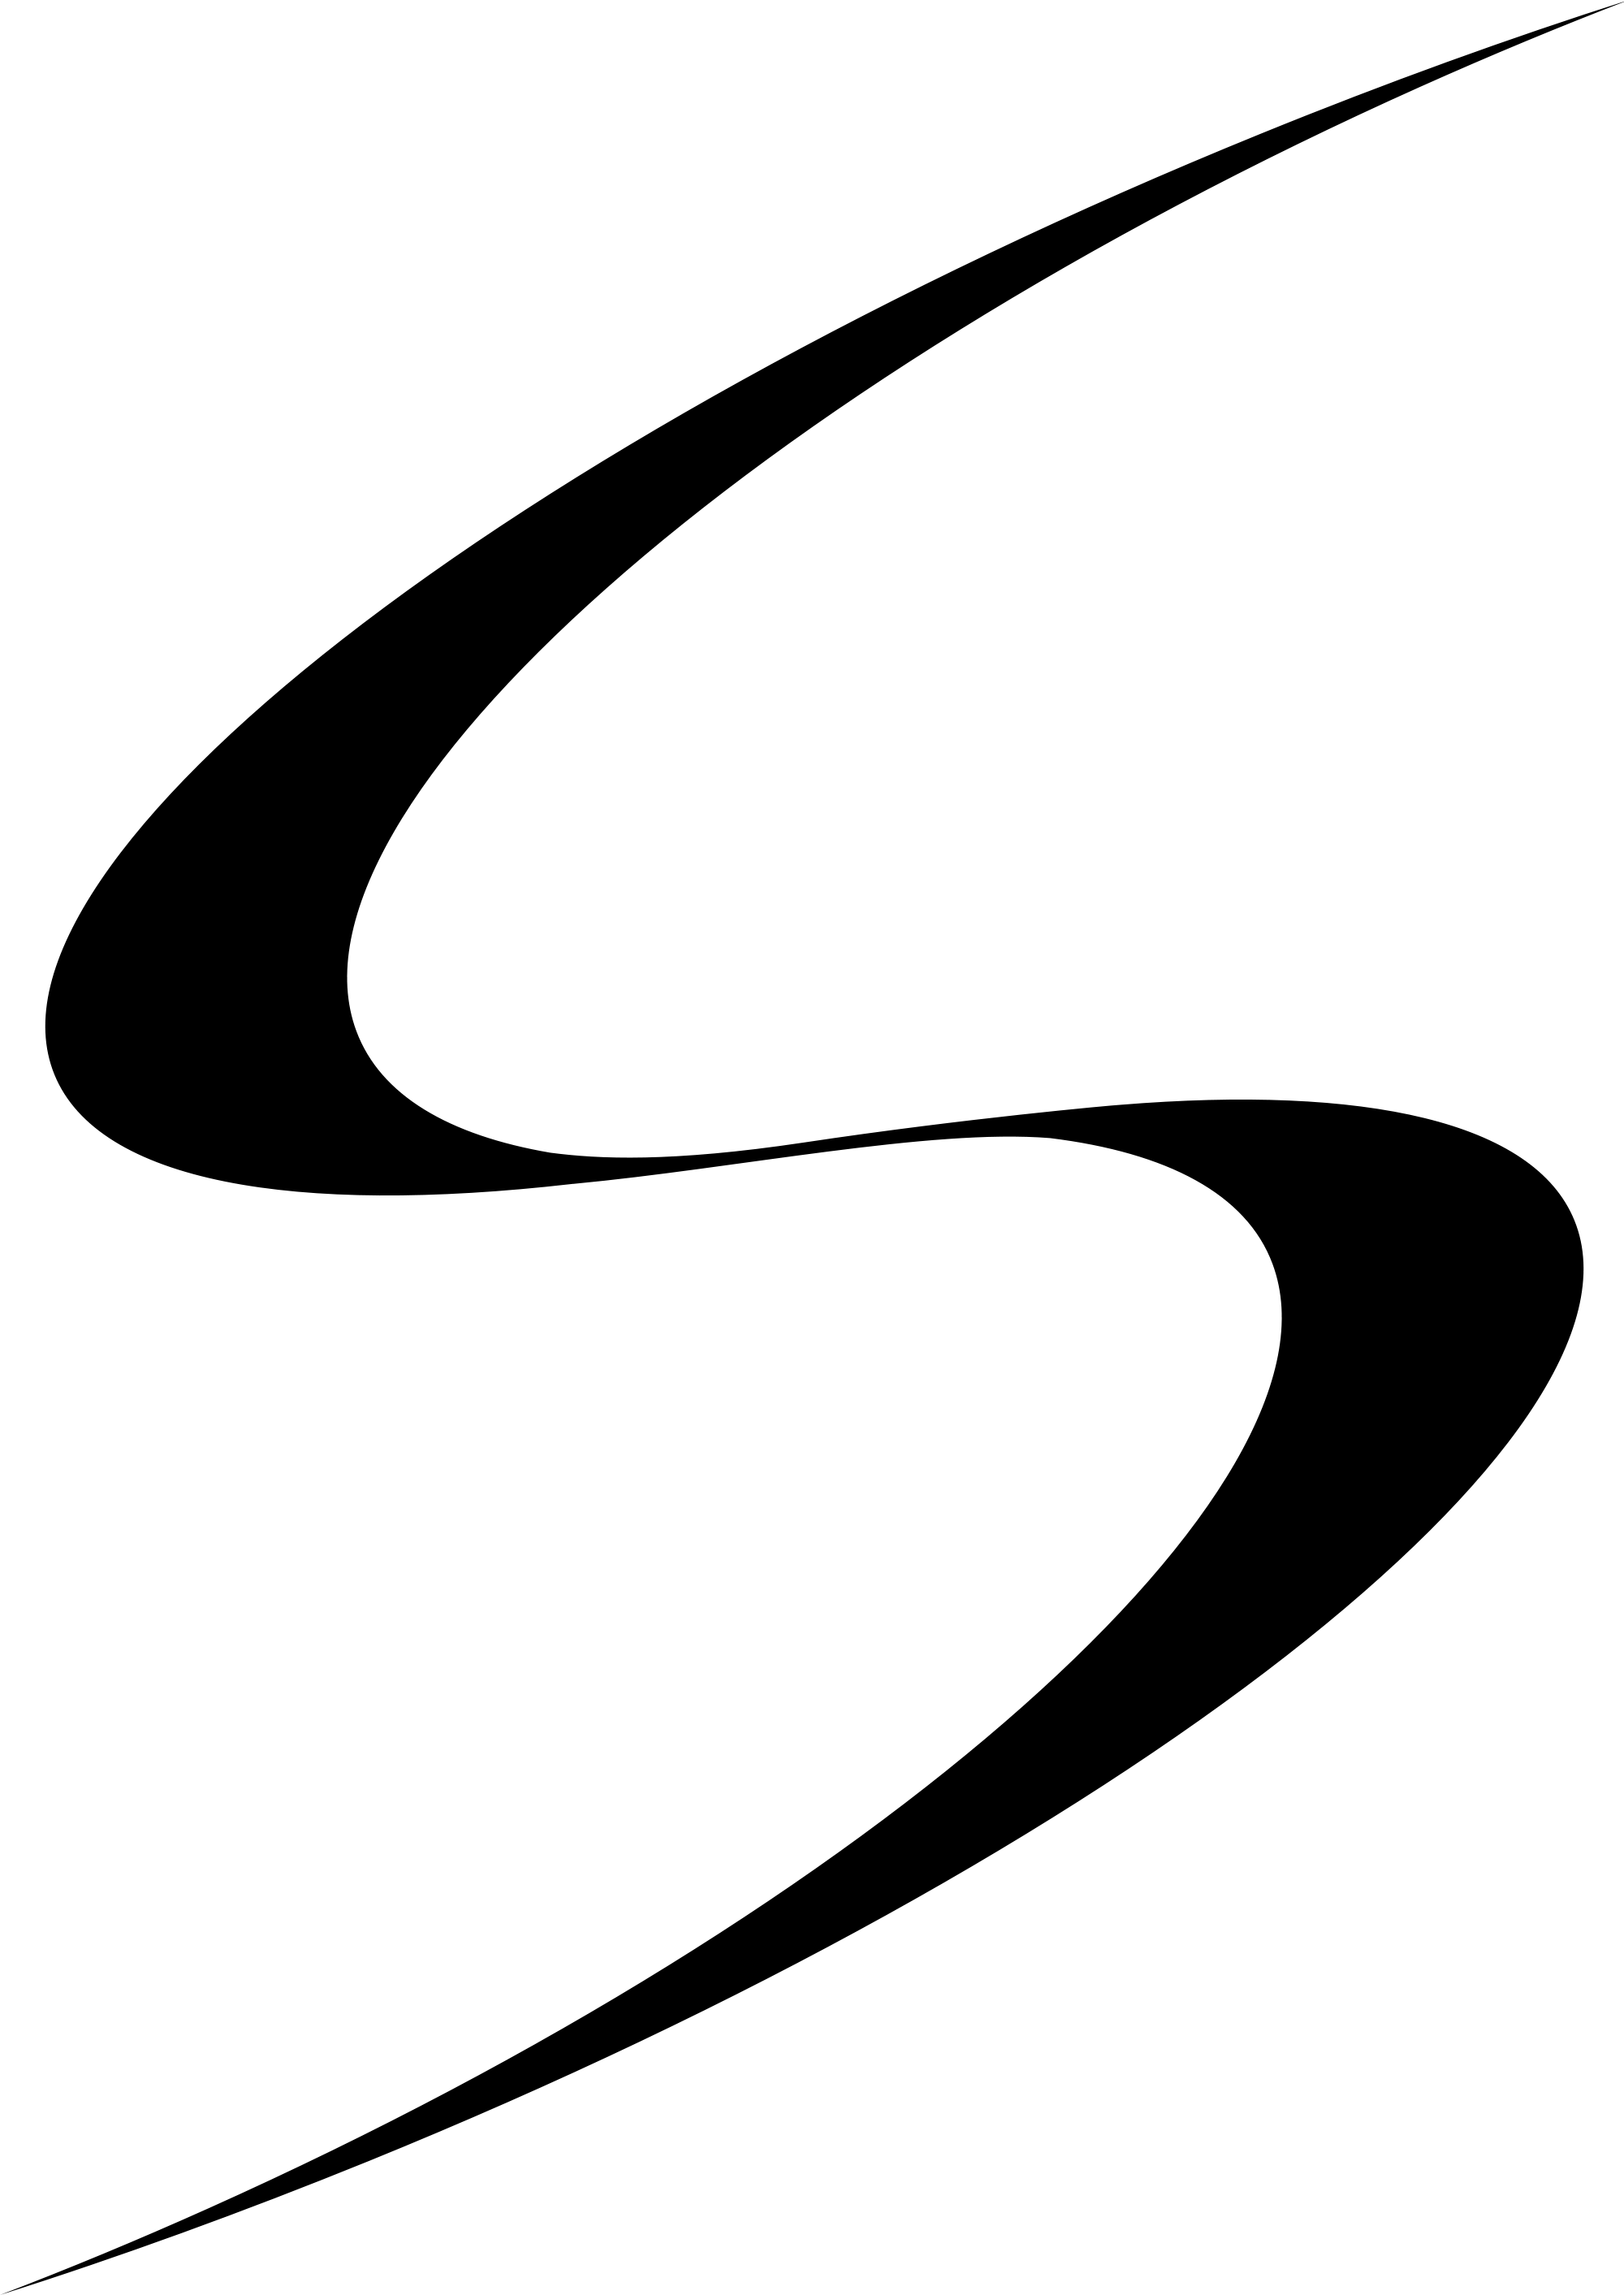 Black s png. File from samsung galaxy